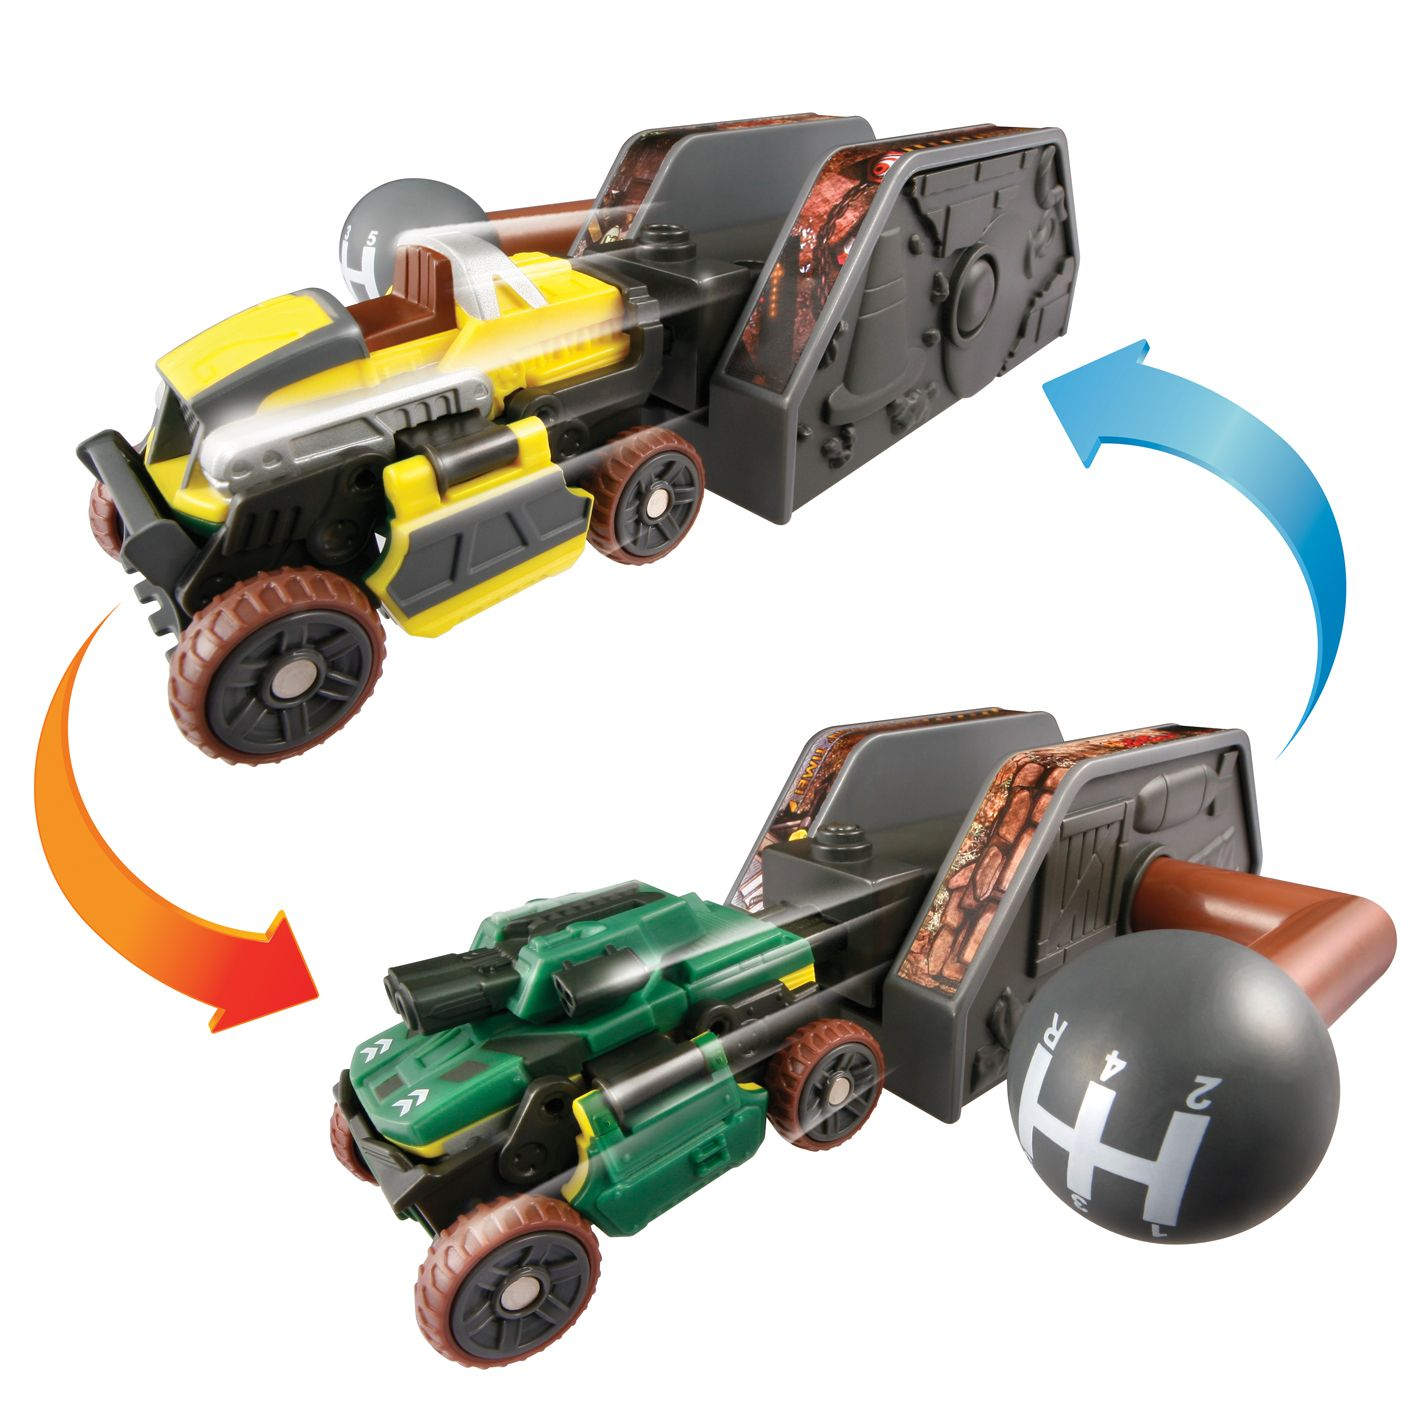 Flip Force Flip and Launch Set - Destruction To Co Flip Force Flip and Launch Set - Destruction To Construction http://www.comparestoreprices.co.uk/childs-toys/flip-force-flip-and-launch-set--destruction-to-co.asp